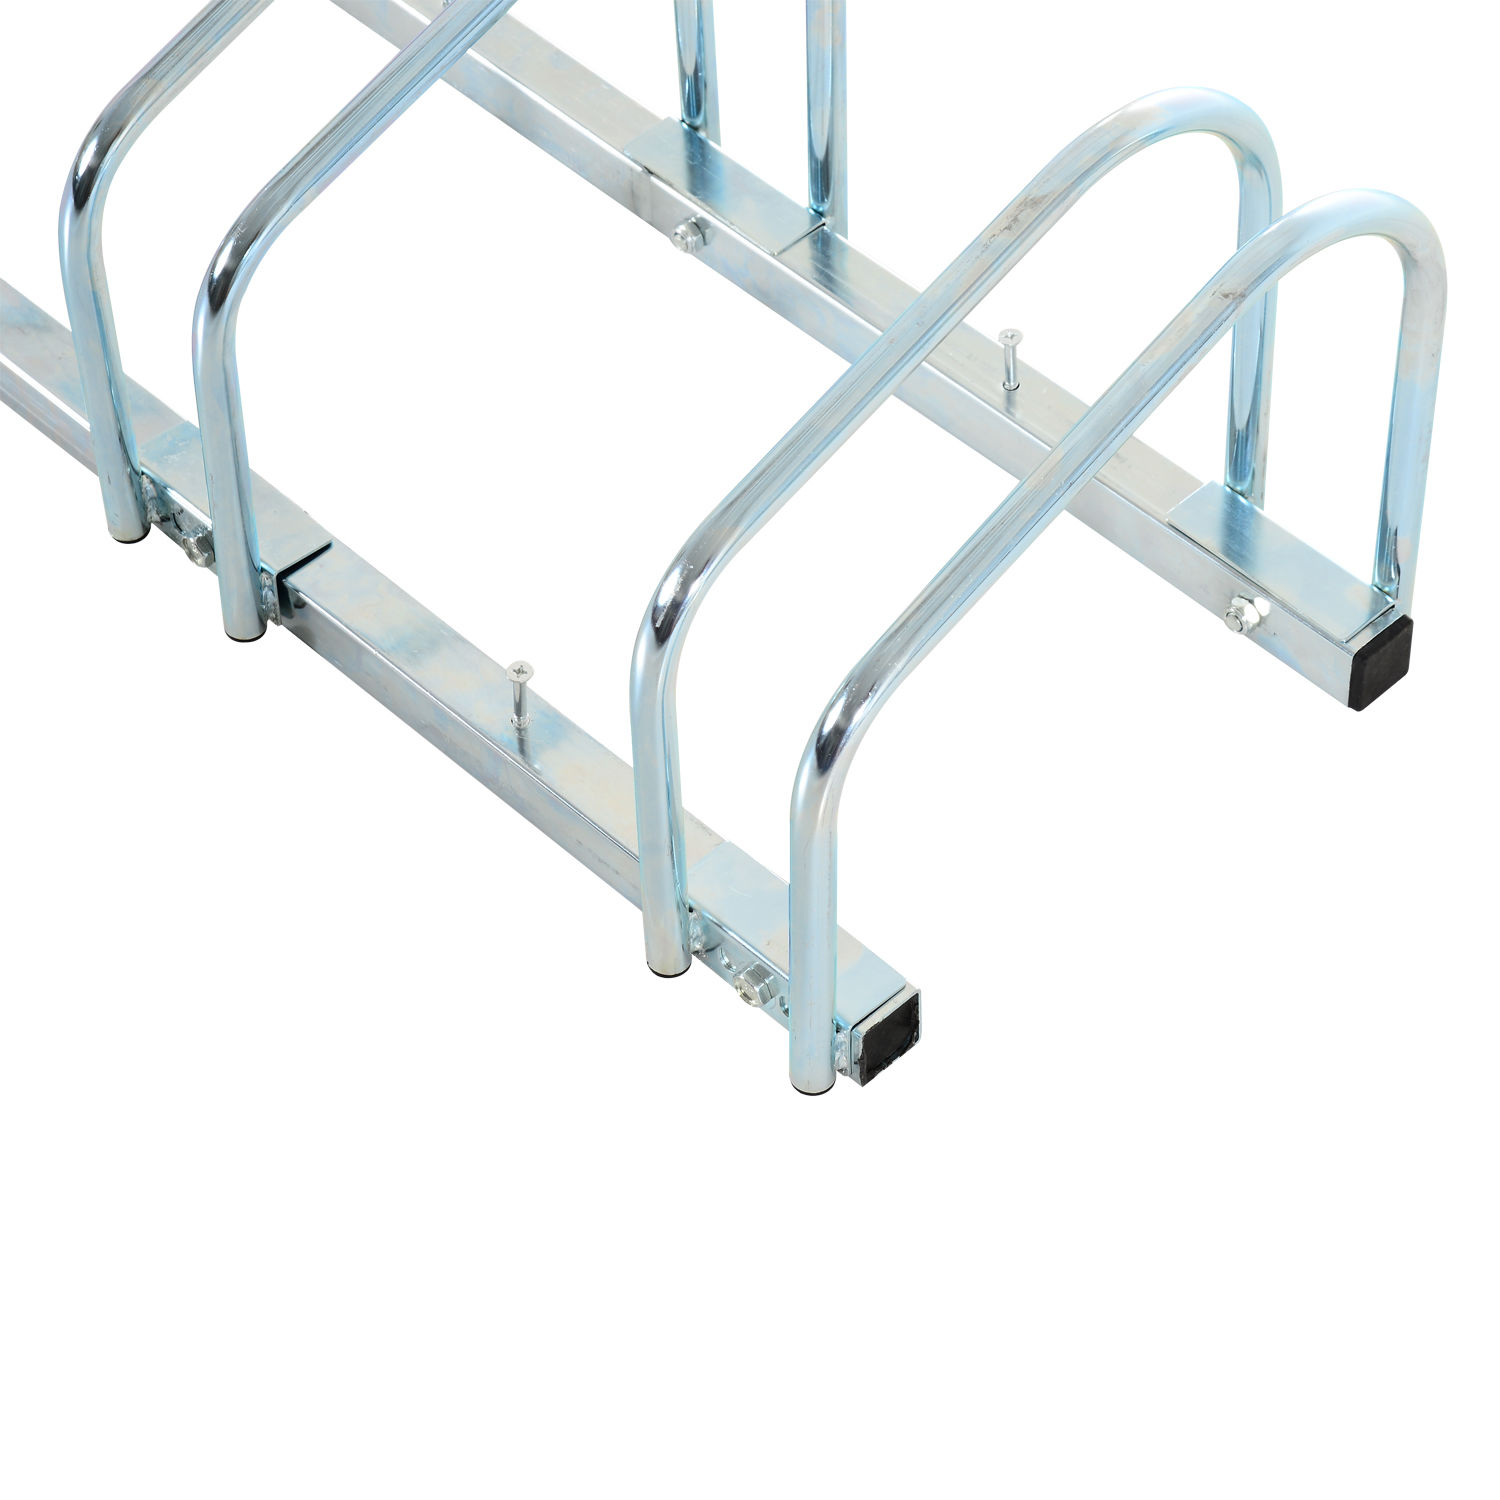 Bicycle-Bike-Parking-Cycle-Floor-Rack-Stand-Storage-Mount-Holder-Steel-Pipe miniatura 27